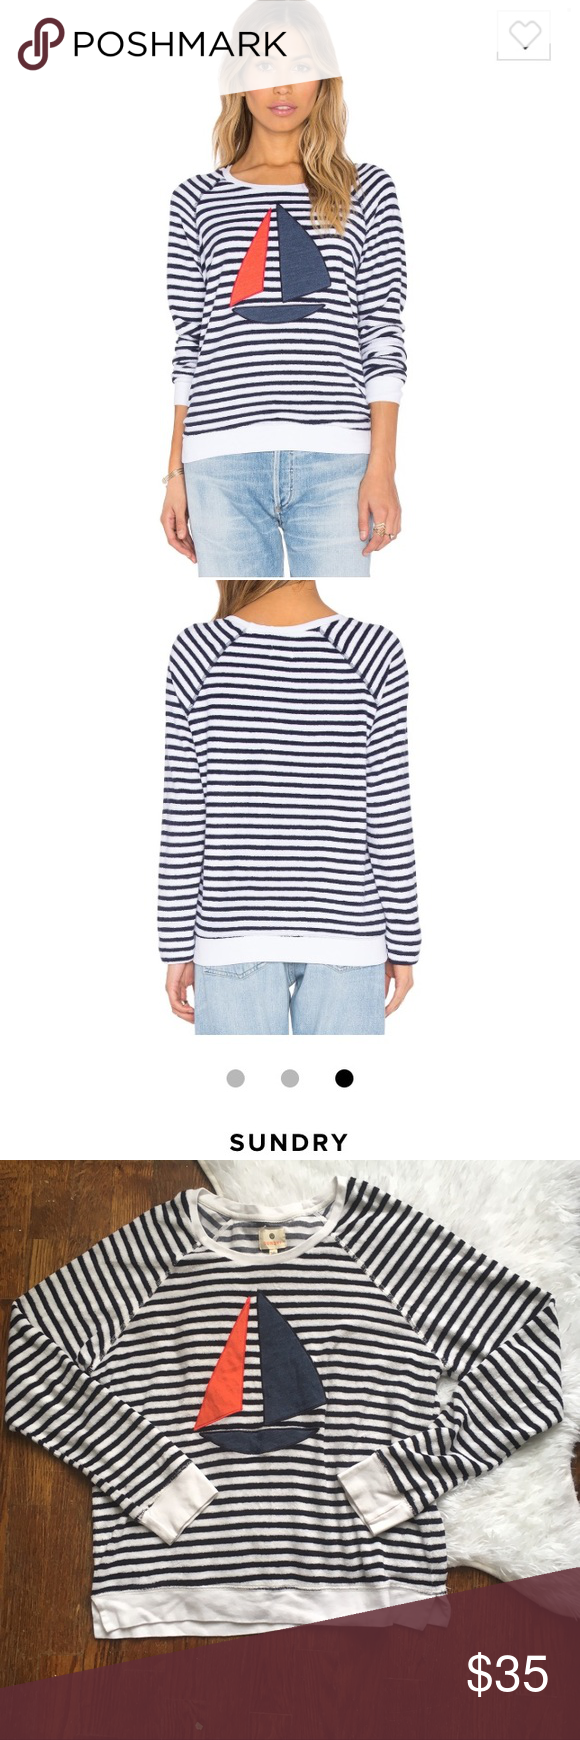 Sundry Sailboat Stripe Pullover Sweater Novelty Sundry size 2 (equivalent to a medium per their size chart) novelty stripe sailboat appliqué sweatshirt/sweater. Pull this fun piece on over your swimsuit when the night gets cool and everyone will know who the captain is. Still for sale on revolve for $73! Gently loved and soft and fluffy like a beach towel or terry cloth robe. Sundry Sweaters Crew & Scoop Necks